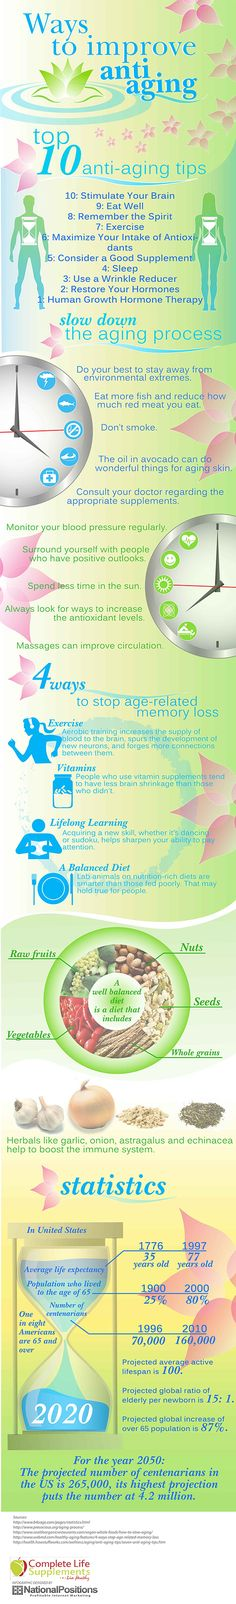 Ways To Improve Anti-Aging [Infographic]